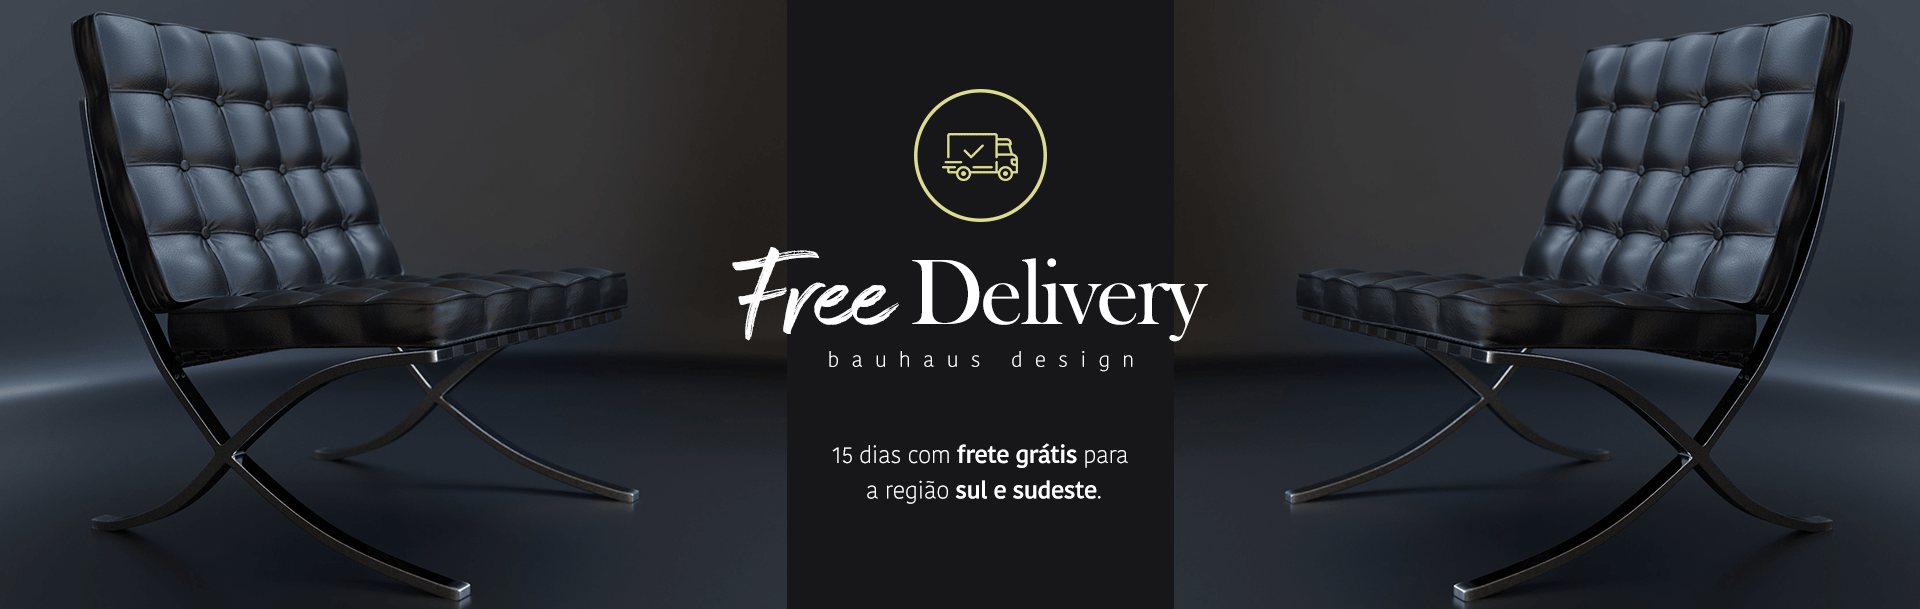 Free Delivery - Promo